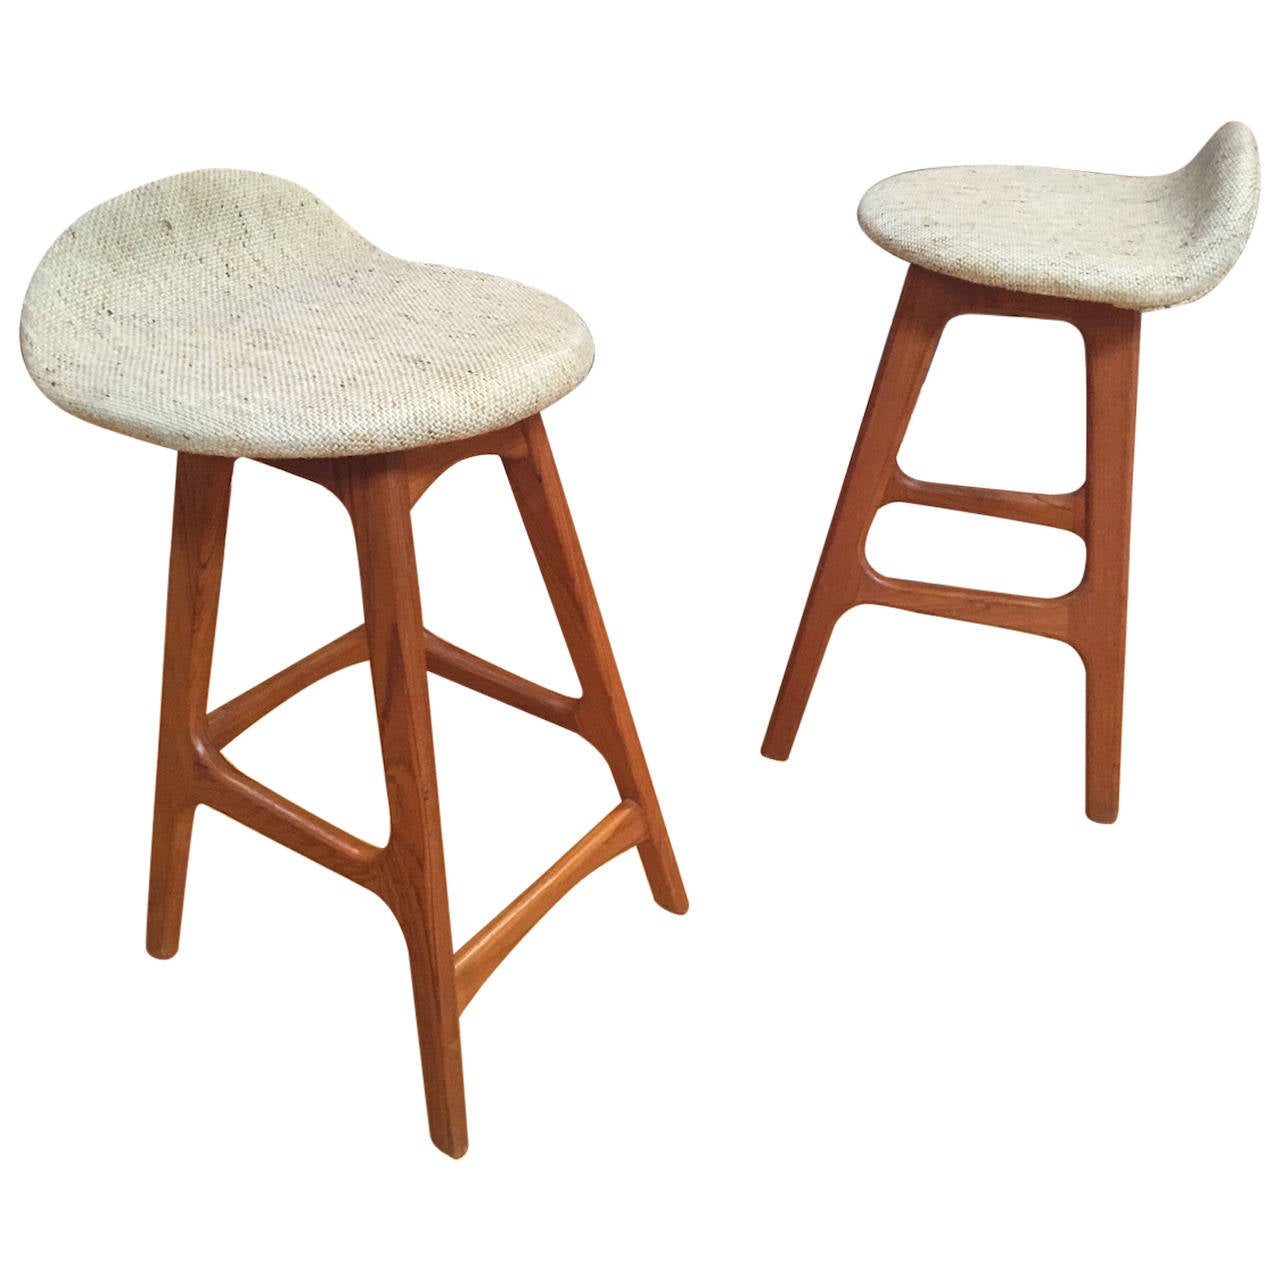 Pair Of Danish Modern Teak Counter Height Bar Stools By